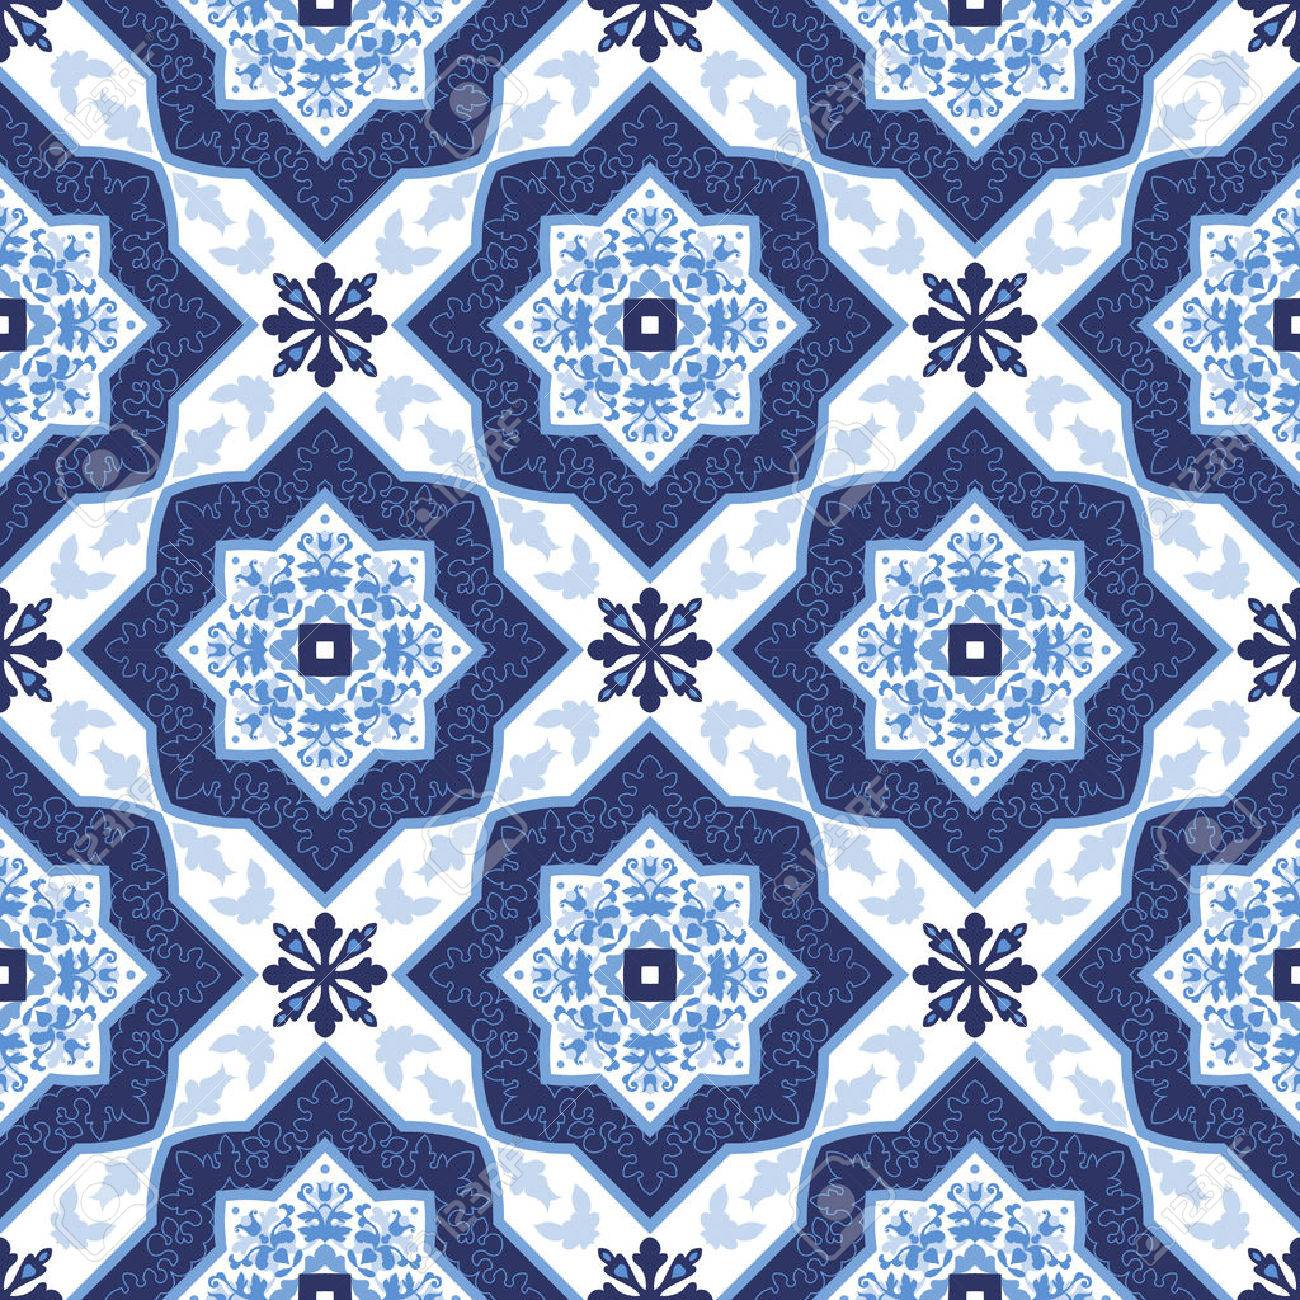 Portuguese azulejo tiles. Blue and white gorgeous seamless patterns. For scrapbooking, wallpaper, cases for smartphones, web background, print, surface textures. Stock Vector - 51976294